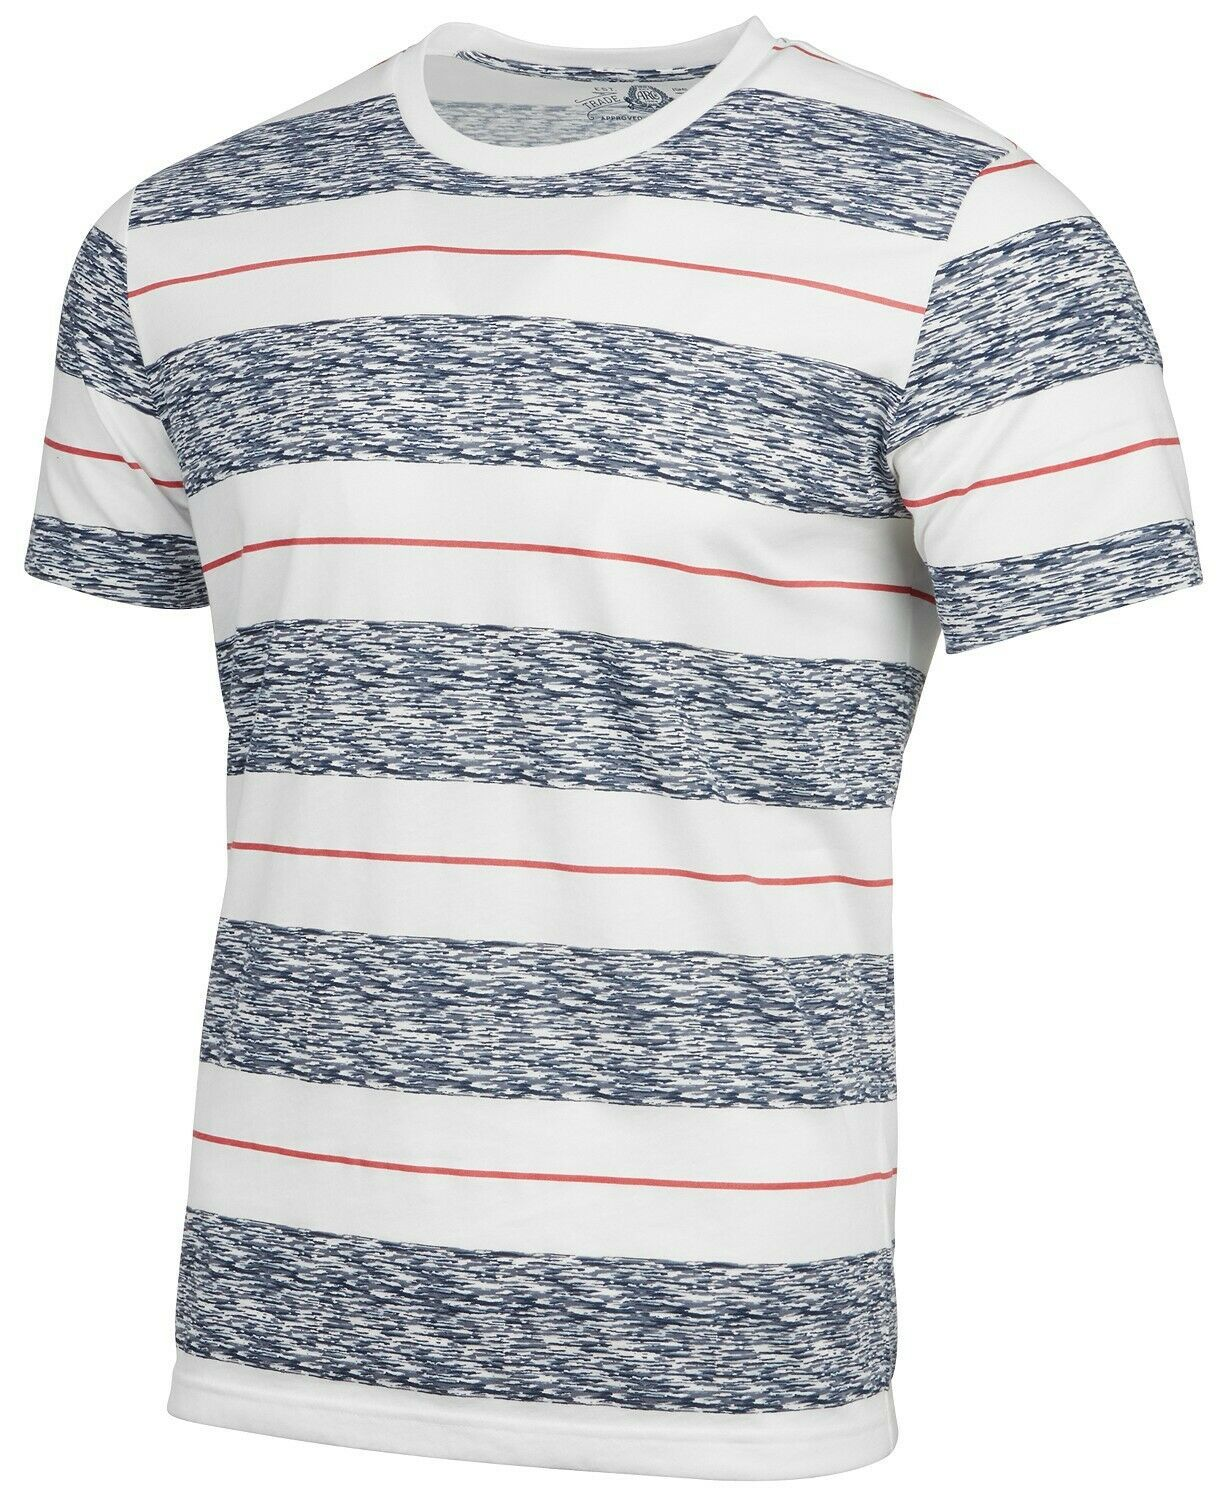 American Rag Men's Heathered Striped T-Shirt, Bright White, Size XL